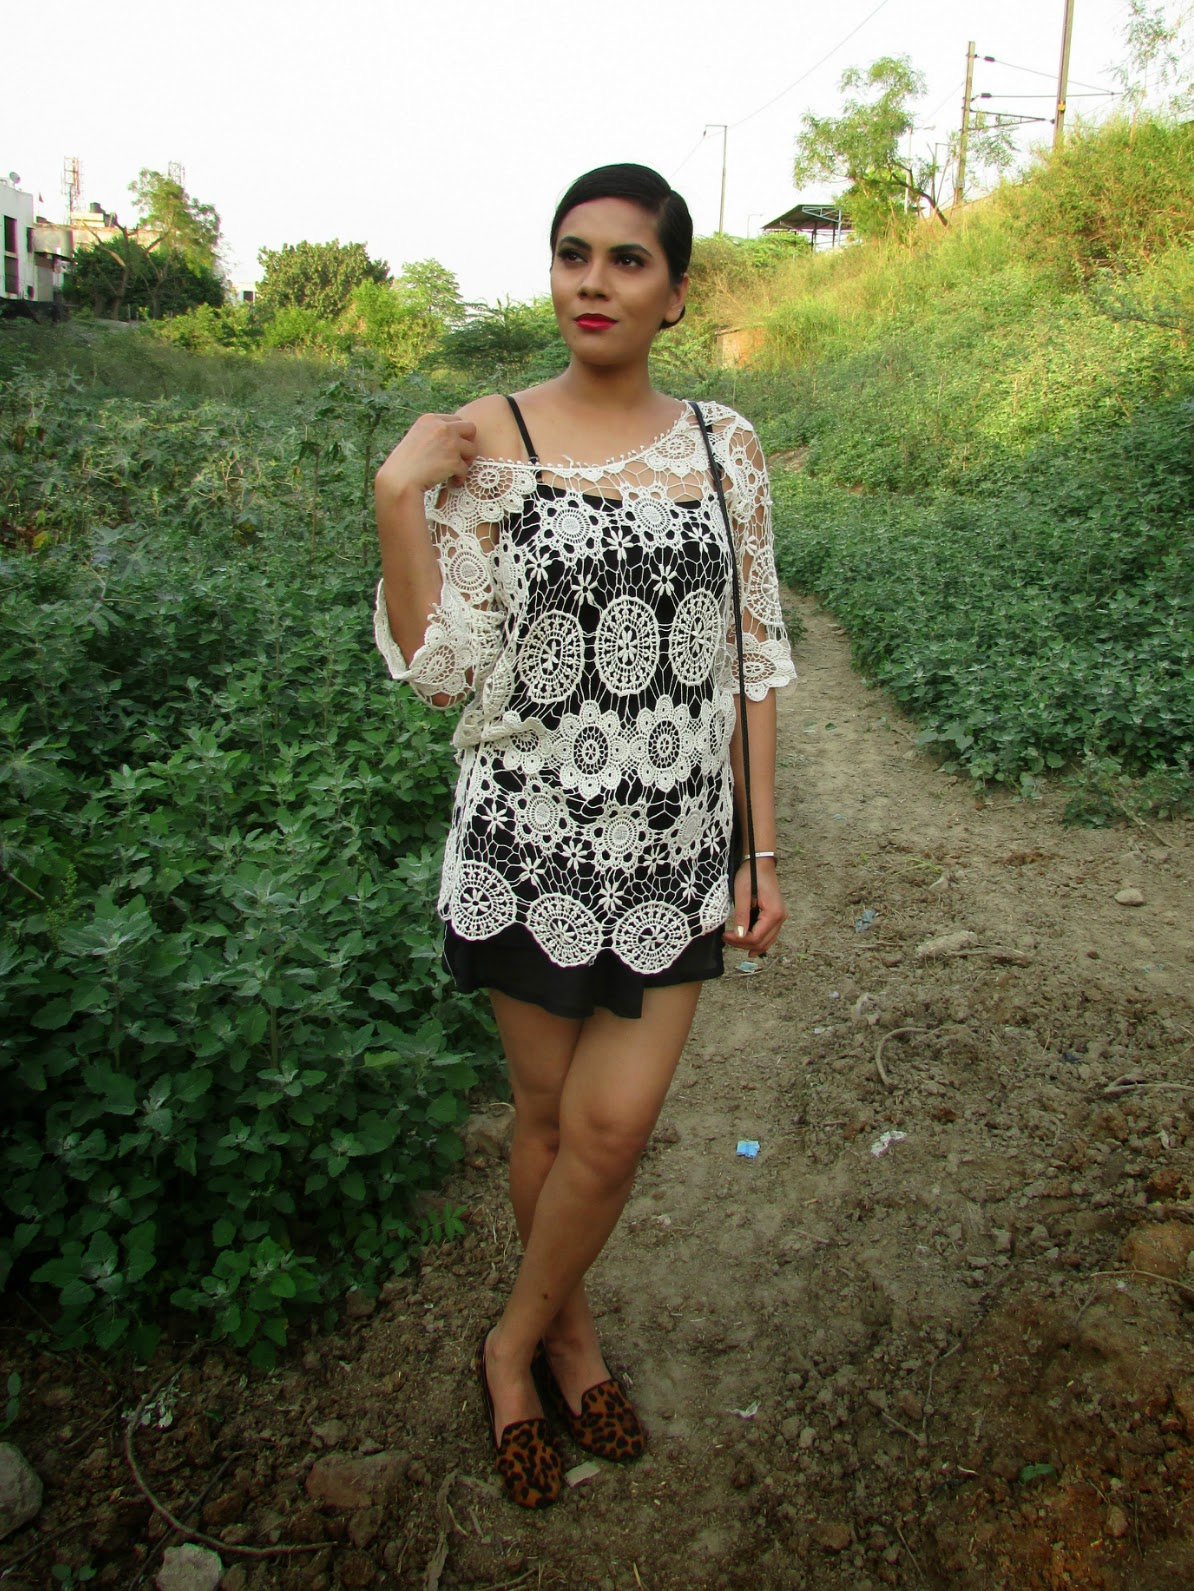 Loafers, leopard loafers, how to style loafers, how to styles loafers for summers,summer flats, spring flats, cheap loafers, chicnova, leopard shoes, fashion, Indian fashion blogger, Long Sleeves Zipper Side Slit Knitwear, heavy knit sweater, pullover, warm pullover, winter trends 2015, how to style heavy sweater, india winter trends,peplu, floral , floral peplum , floral peplum top , frock top , peplum top with floral print, peplum floral , sweat heart neck line top , distressed,distressedjeans, distressedboyfriendjeans,boyfrien,boyfriendjeans,boyfriendjeanswithcutout,ripped,rippejeans, fashion , chcnova,ootd,chicnovareview , distressedjeans chicnova,rippedboyfriendjeans,distressedpants,howtostylerippedjeans,howtostyleboyfriendjeans,howtostylebaggyjeans,crochet , lace , summer, white , crochet top , lace top , white lace top , white crochet top , net , net top , white net top,Statement necklace, necklace, statement necklaces, big necklace, heavy necklaces , gold necklace, silver necklace, silver statement necklace, gold statement necklace, studded statement necklace , studded necklace, stone studded necklace, stone necklace, stove studded statement necklace, stone statement necklace, stone studded gold statement necklace, stone studded silver statement necklace, black stone necklace, black stone studded statement necklace, black stone necklace, black stone statement necklace, neon statement necklace, neon stone statement necklace, black and silver necklace, black and gold necklace, blank and silver statement necklace, black and gold statement necklace, silver jewellery, gold jewellery, stove jewellery, stone studded jewellery, imitation jewellery, artificial jewellery, junk jewellery, cheap jewellery ,chicnova Statement necklace, chicnova necklace, chicnova statement necklaces,chicnova big necklace, chicnova  heavy necklaces , chicnova gold necklace, chicnova silver necklace,  chicnova  statement necklace,chicnova  gold statement necklace,chicnova studded statement